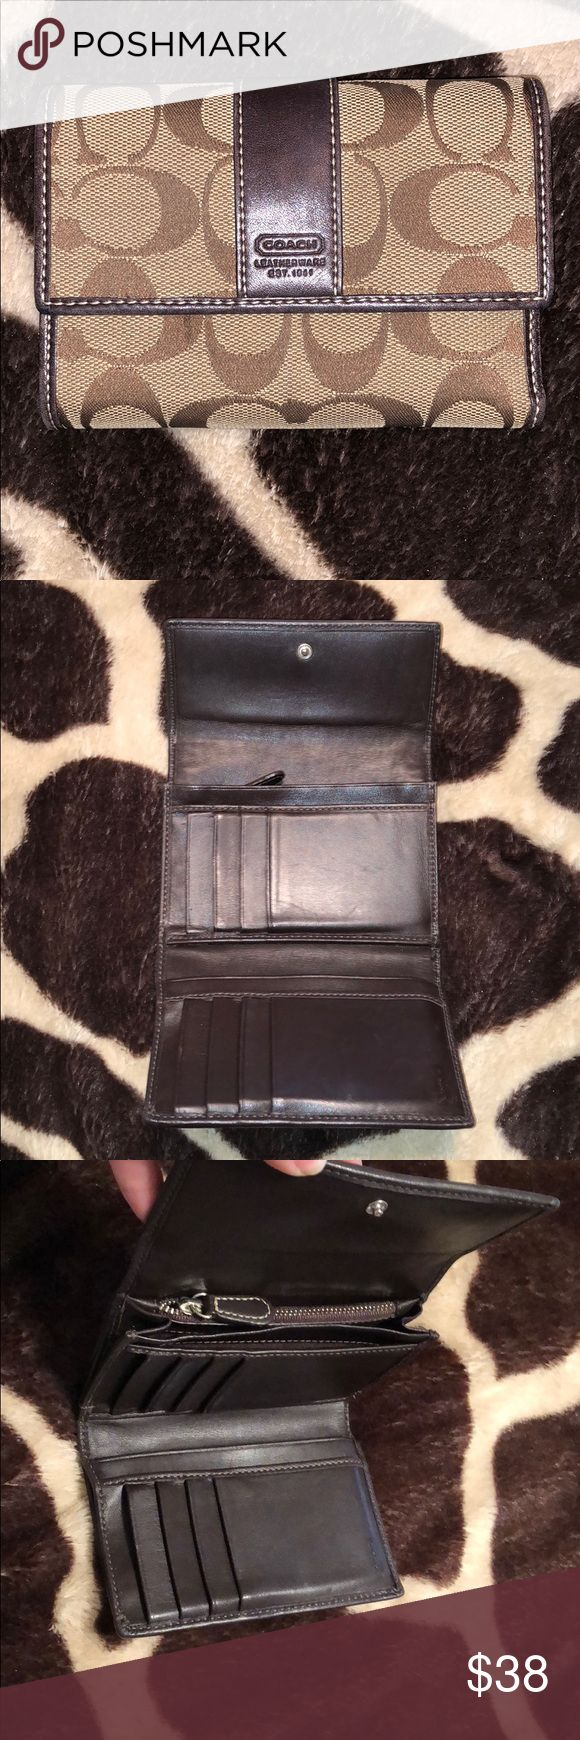 Tan/Brown Coach Wallet 5.5 x 3.5 Coach Wallet in excellent condition Coach Bags Wallets